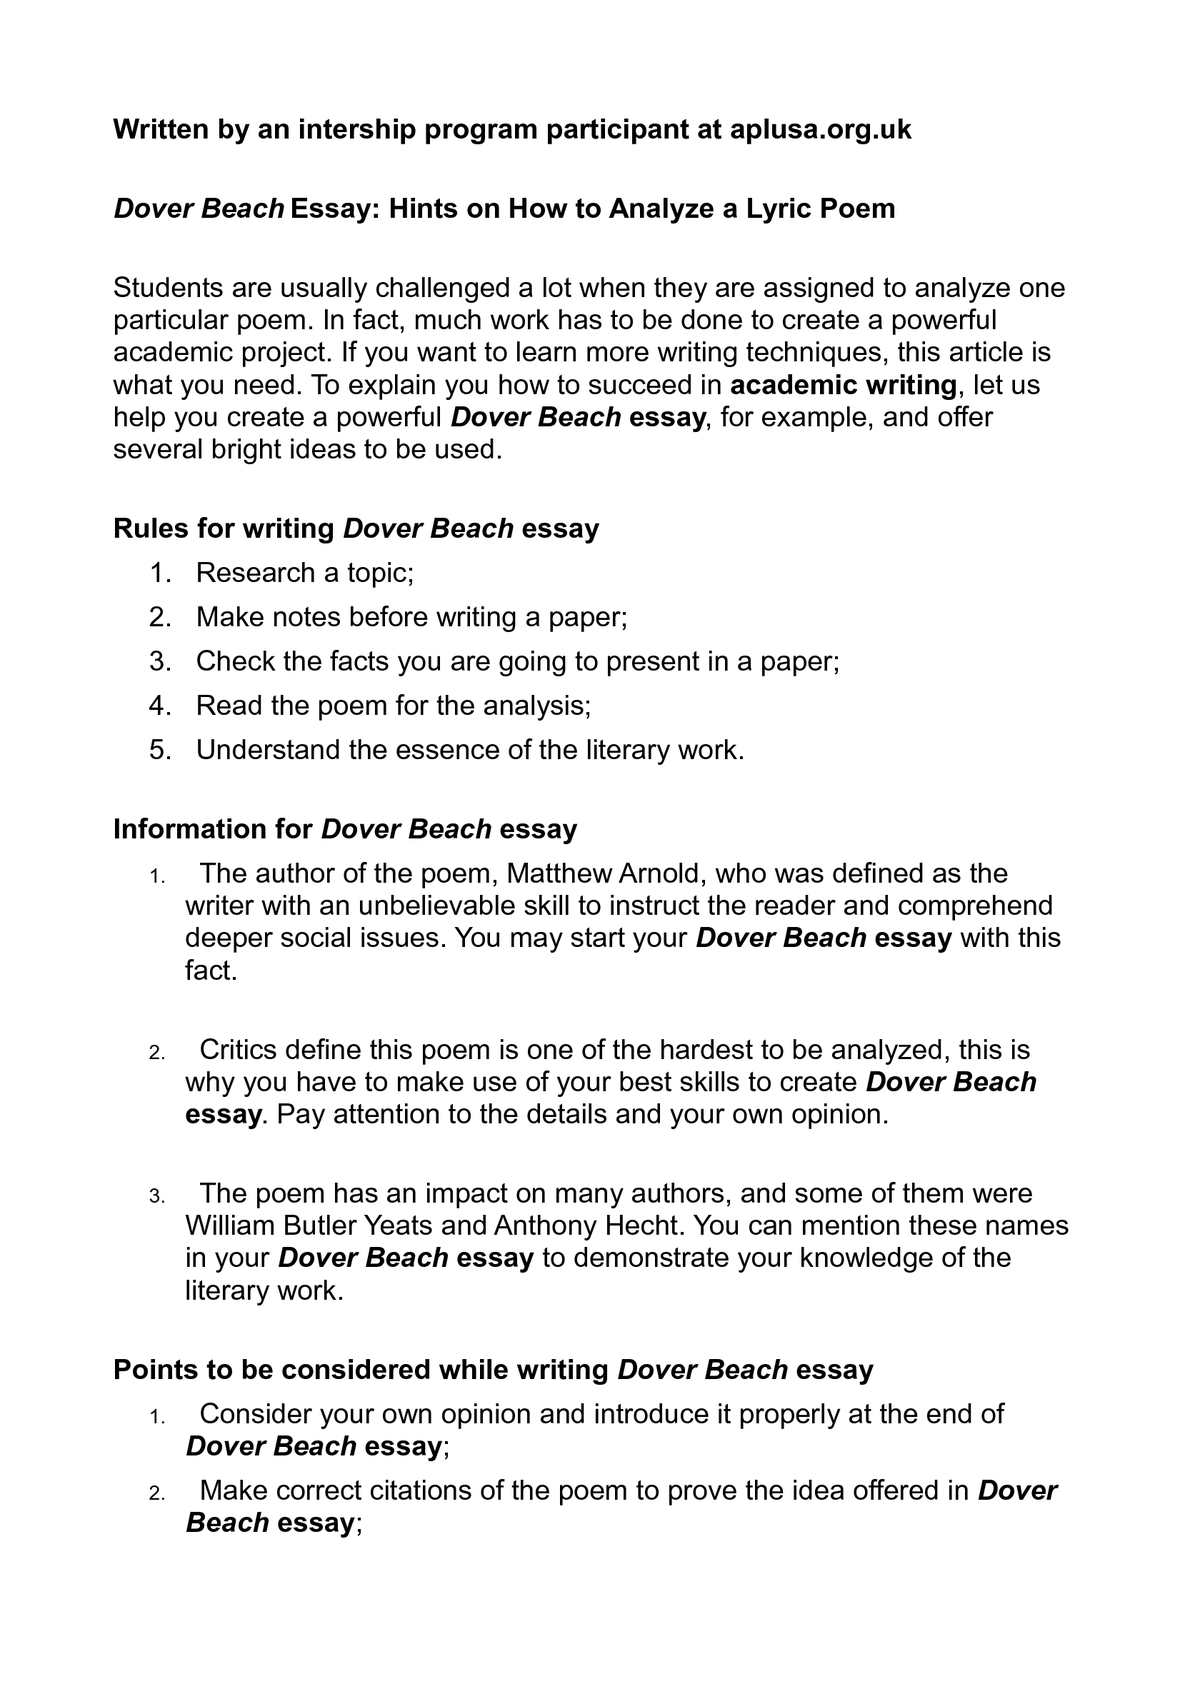 dover beach essay hints on how to analyze a lyric poem